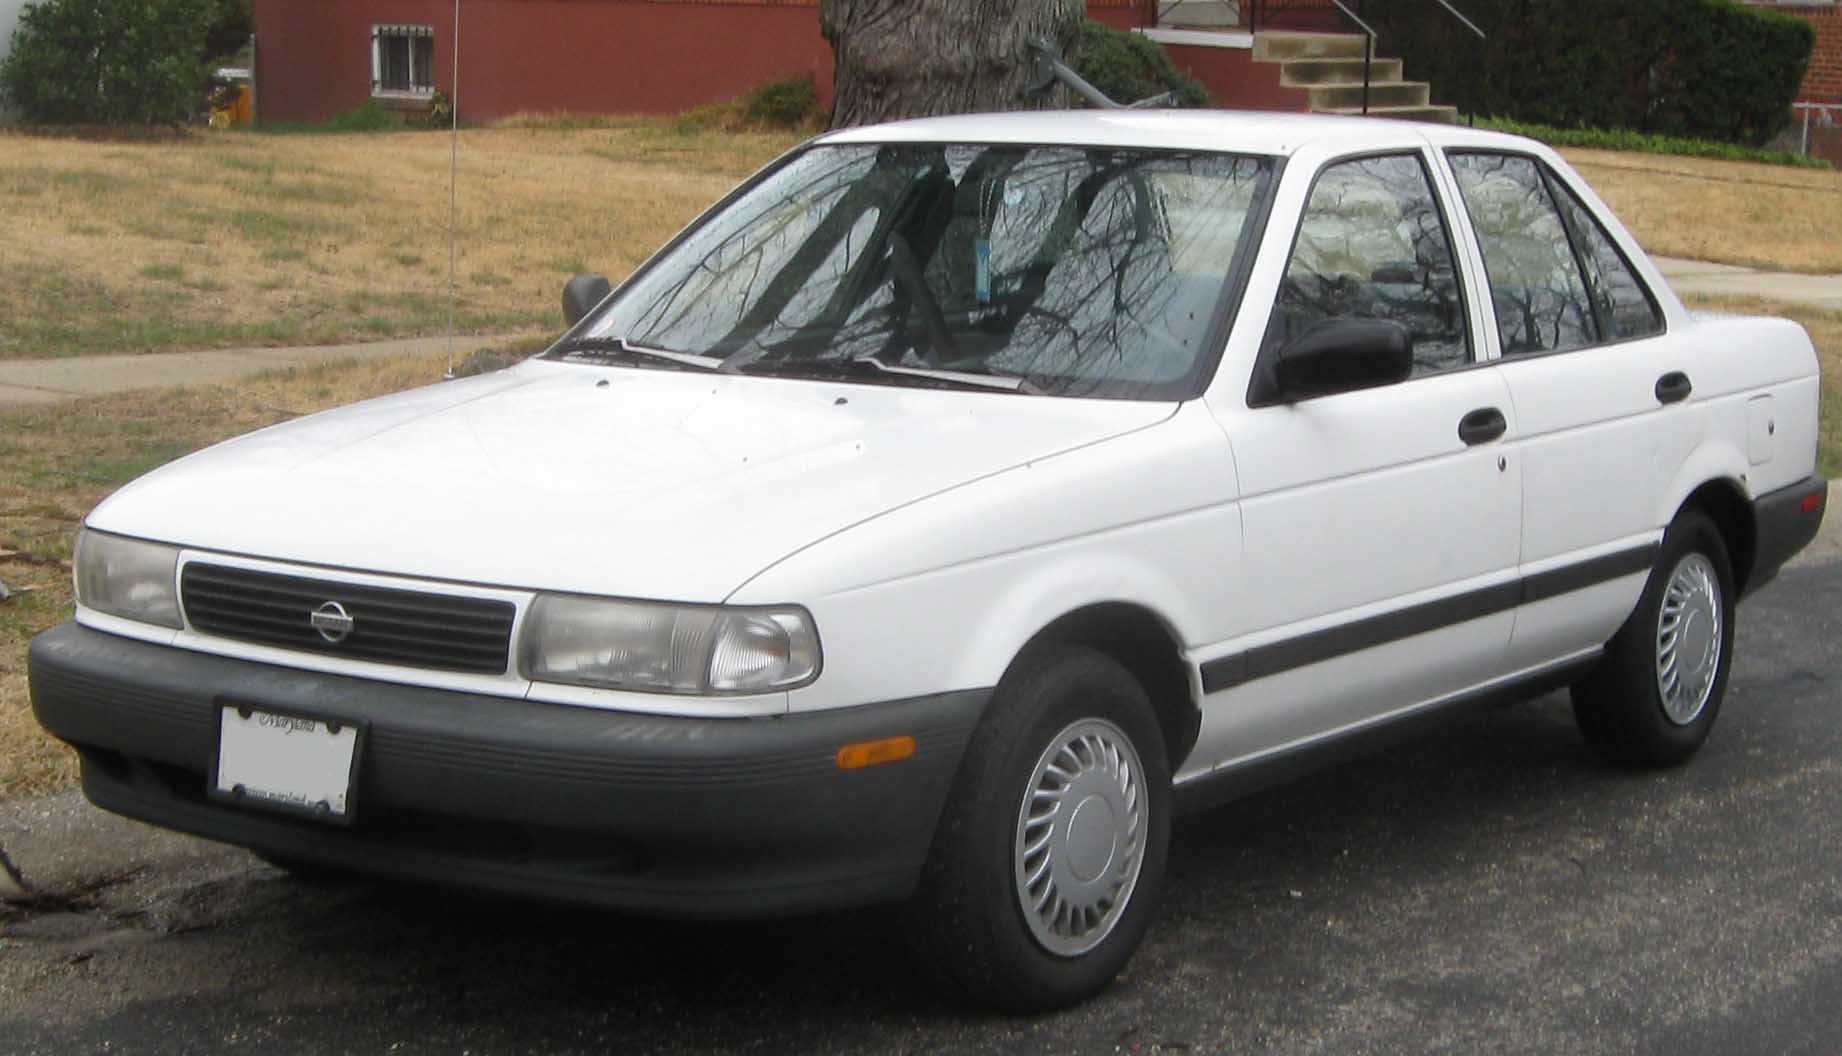 1991 Nissan Sentra Information And Photos Zombiedrive Stanza Engine Diagram 6